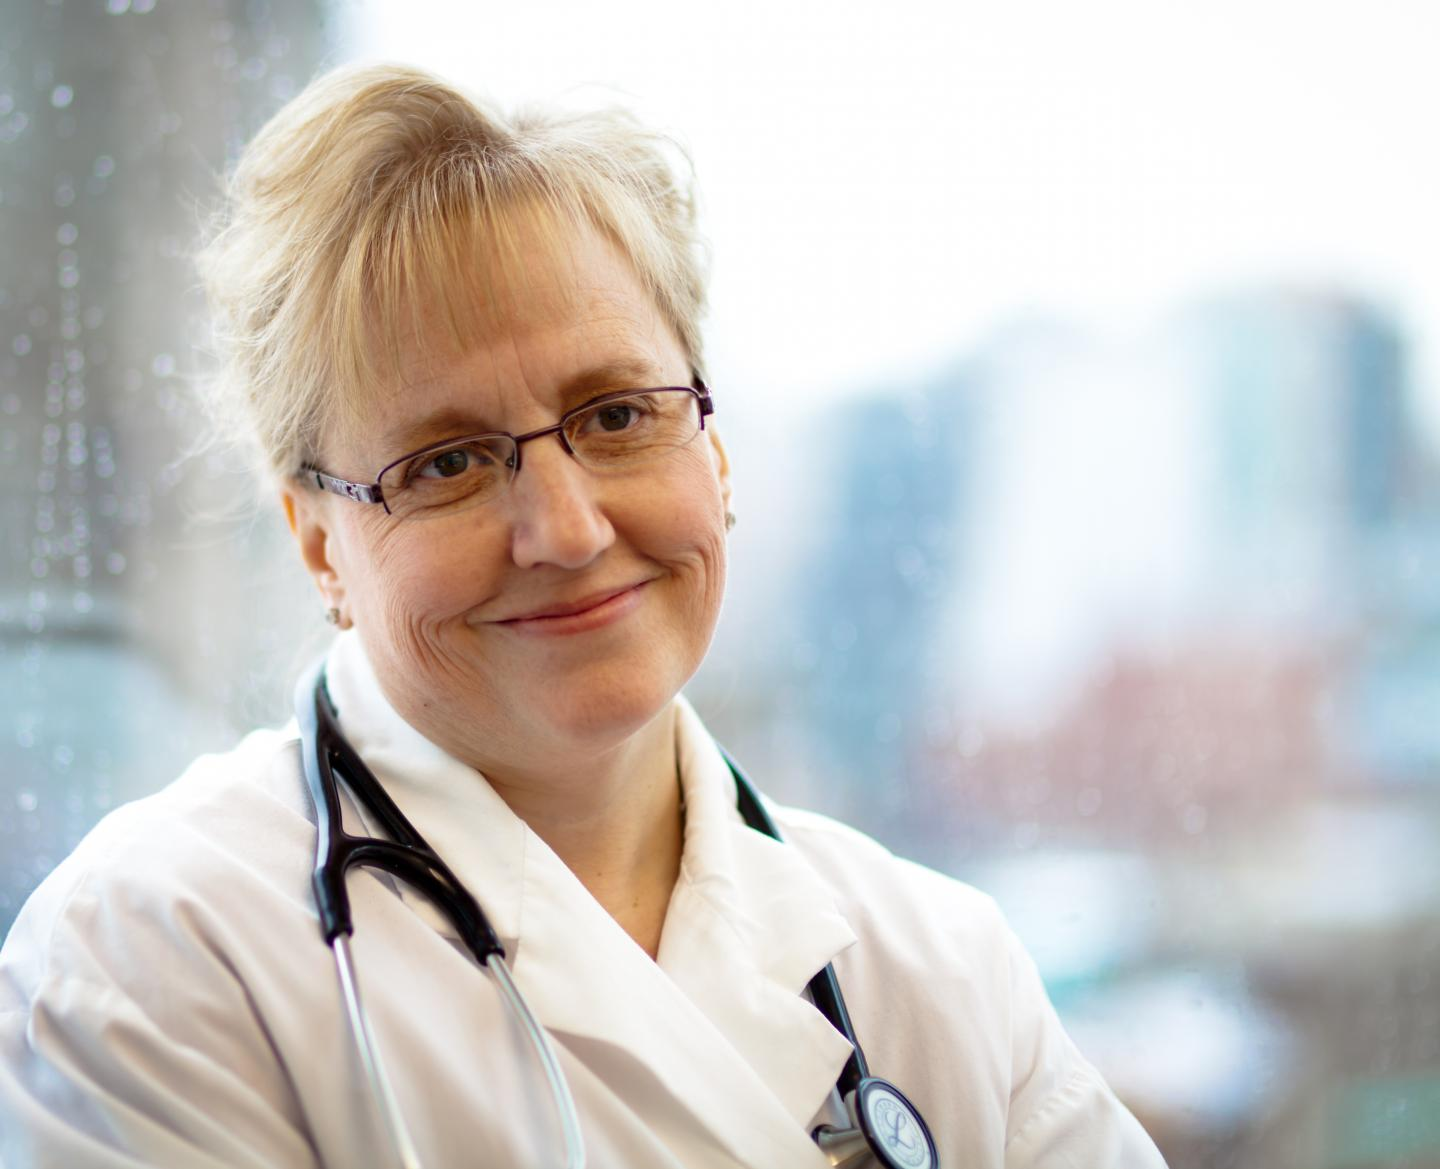 Professor Sharon Straus. Photo courtesy of St. Michael's Hospital